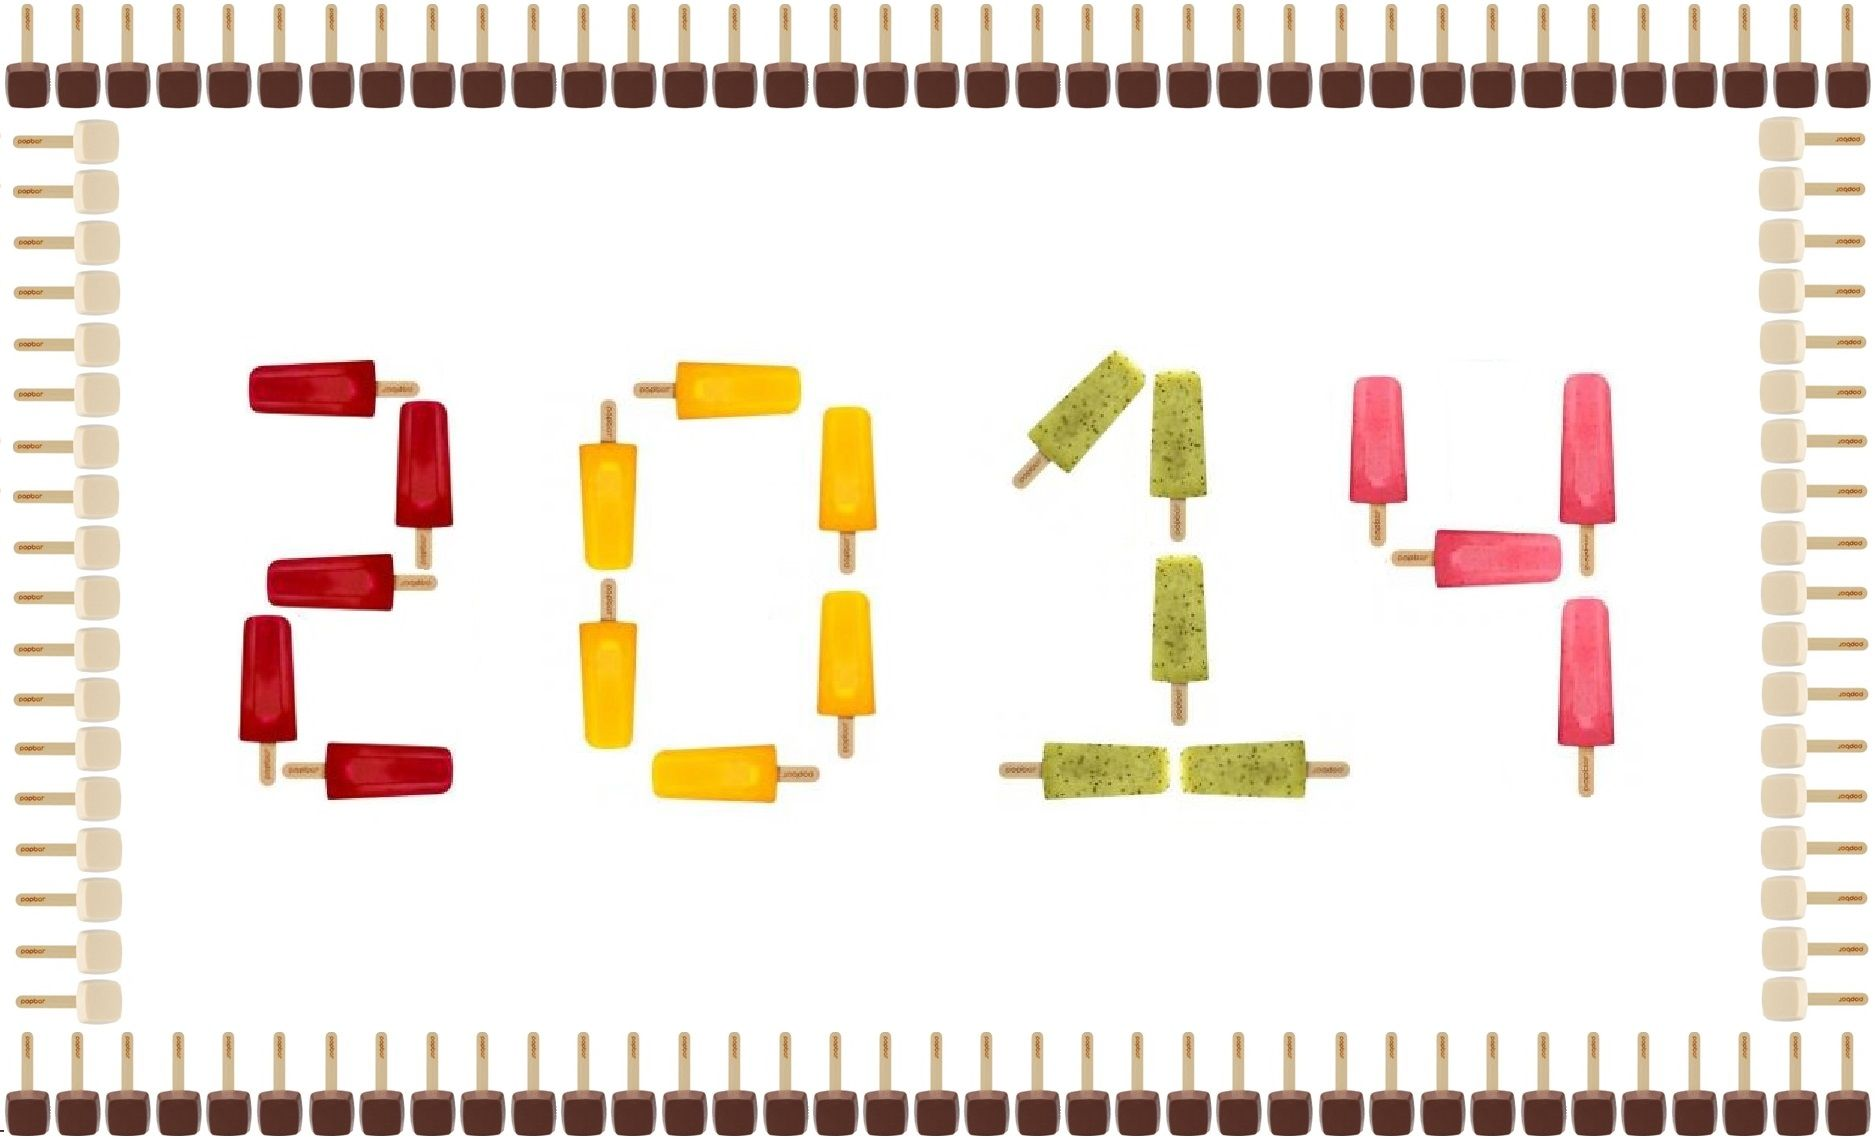 We hope 2013 was a popTastic year for all of our Popaholics and 2014 will be even more popMazing!